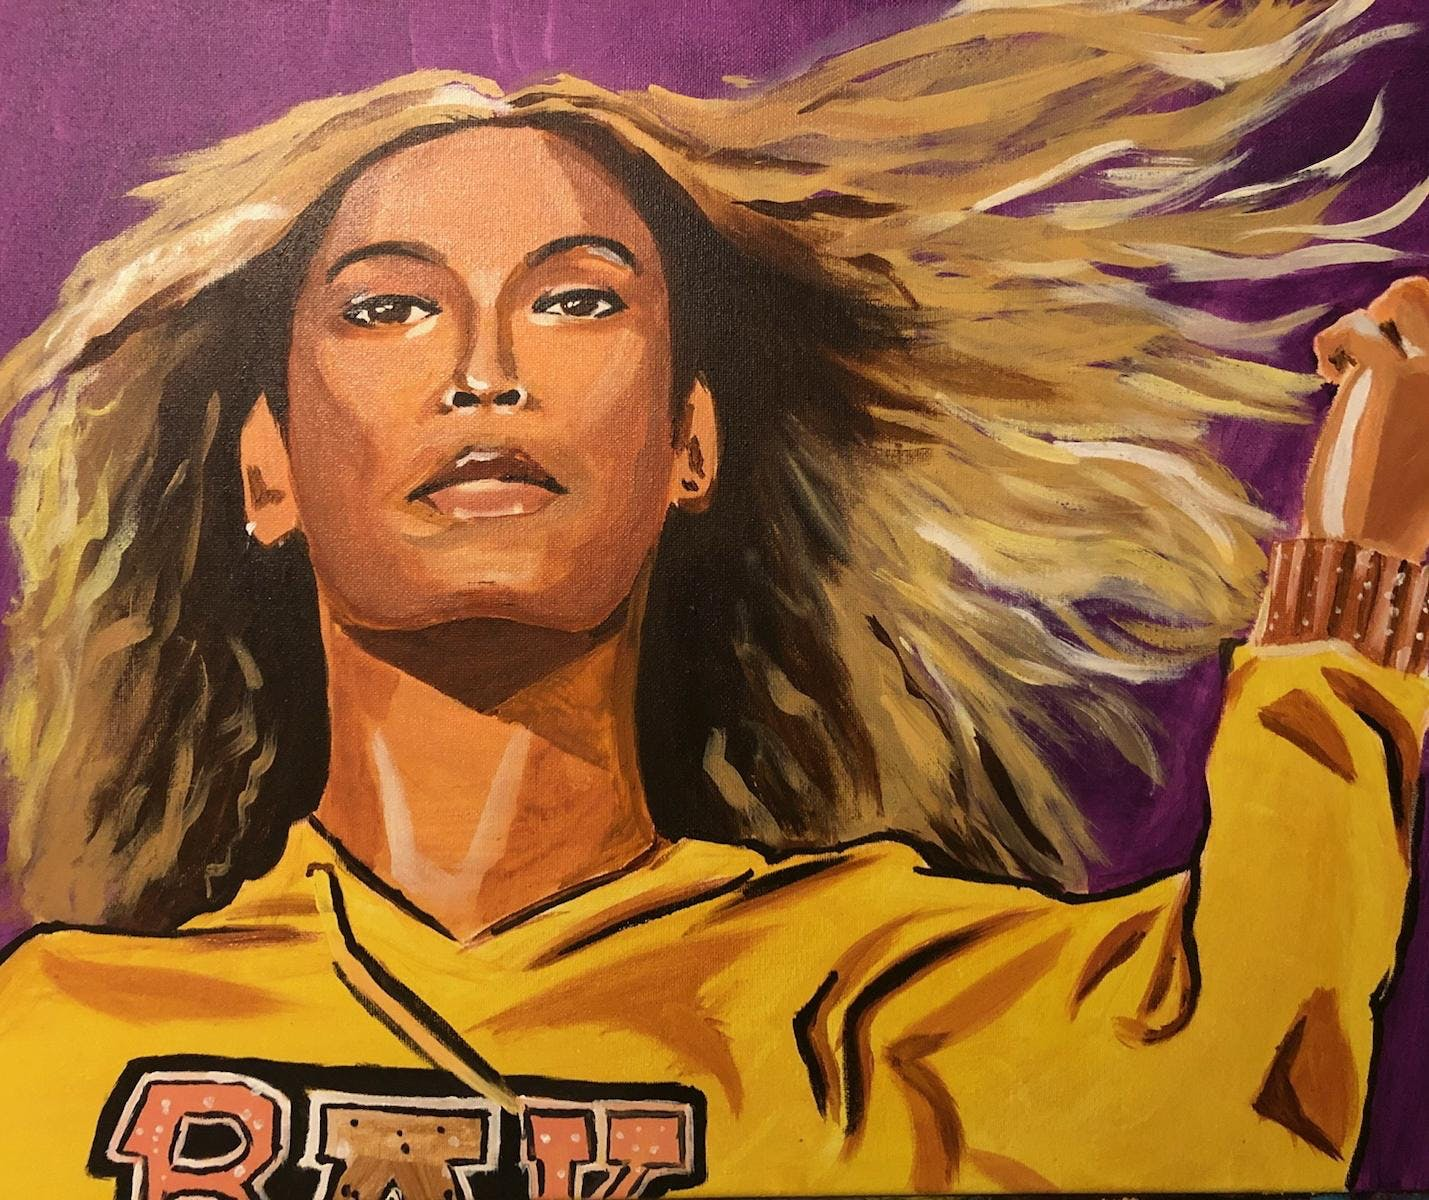 Buzzed Art Nite presents BeyChella